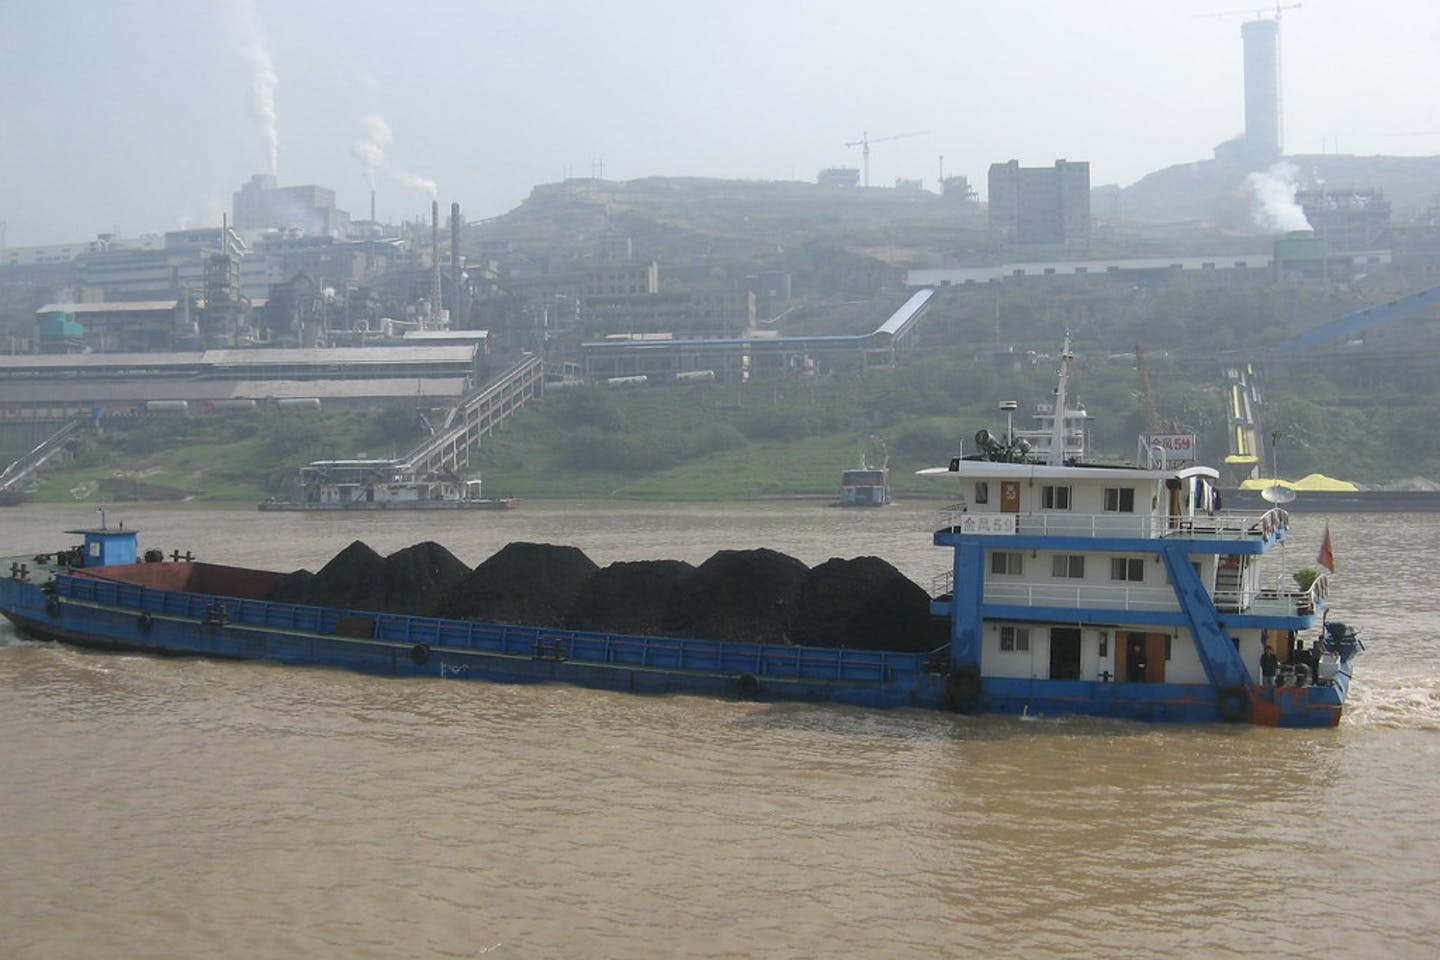 Coal being transported on the Yangtze River in China